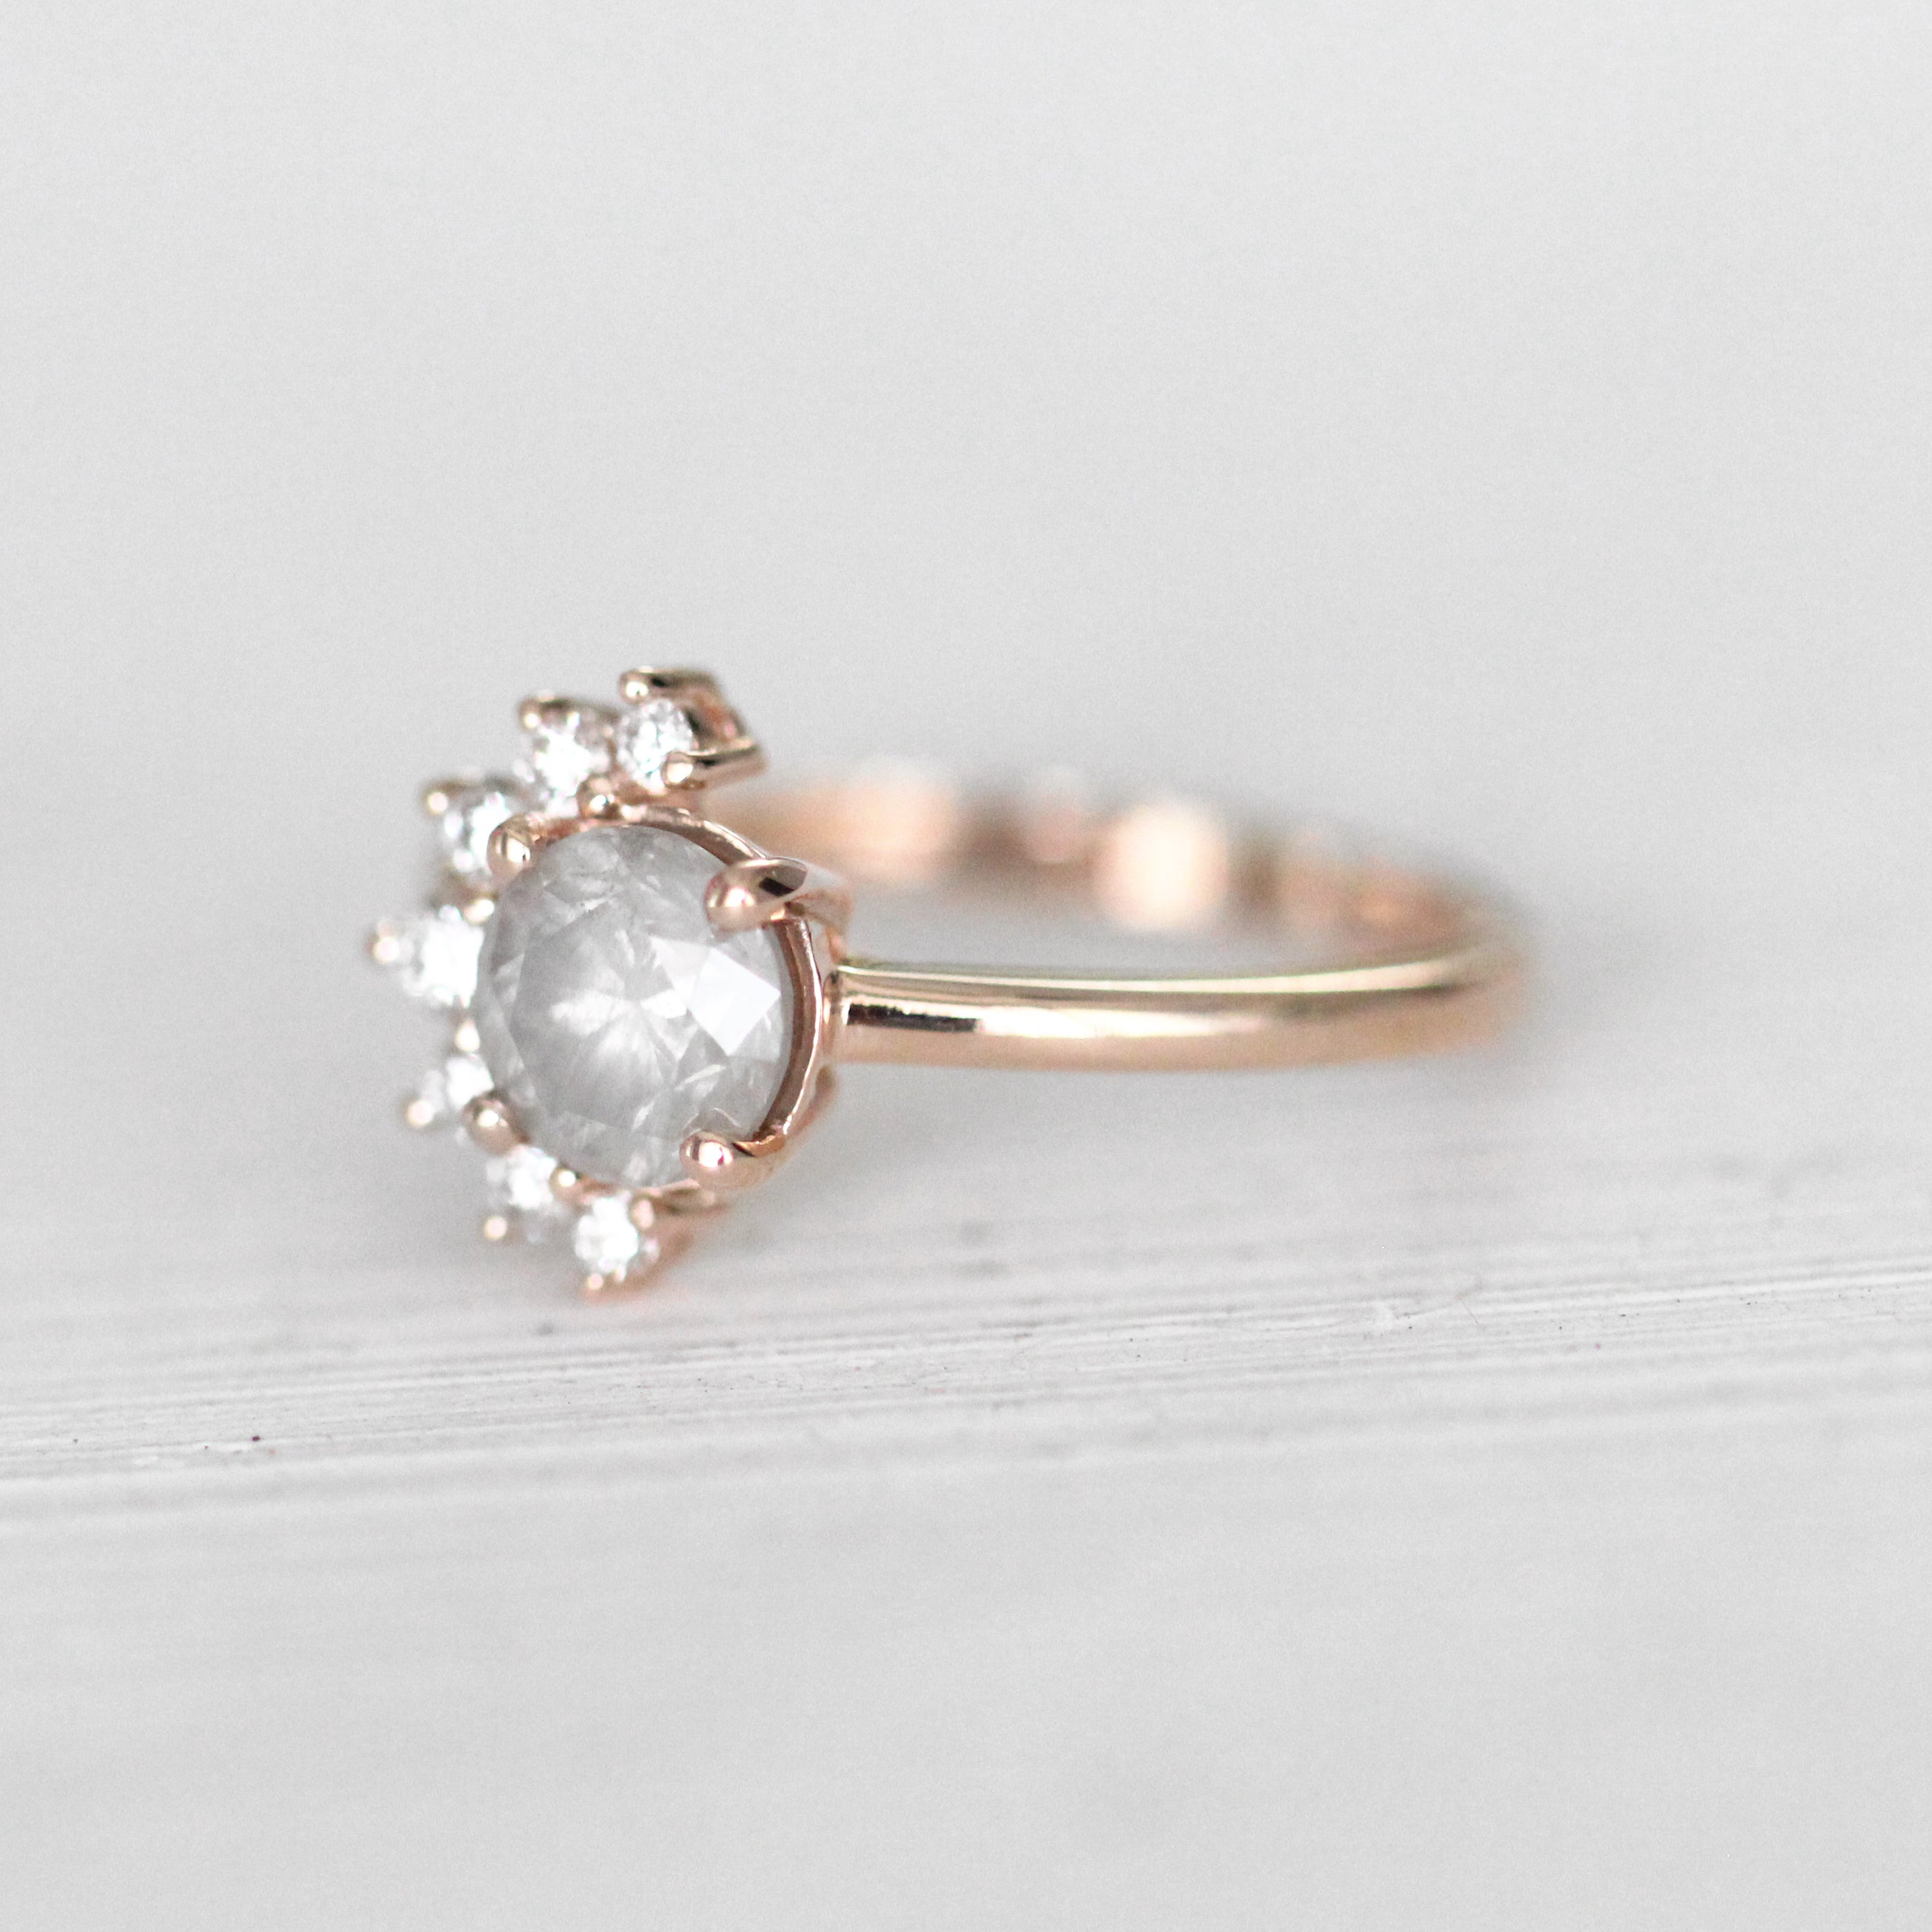 Drew Ring with a 1.09ct Celestial Diamond® in 10k Rose Gold - Ready to Size and Ship - Celestial Diamonds ® by Midwinter Co.